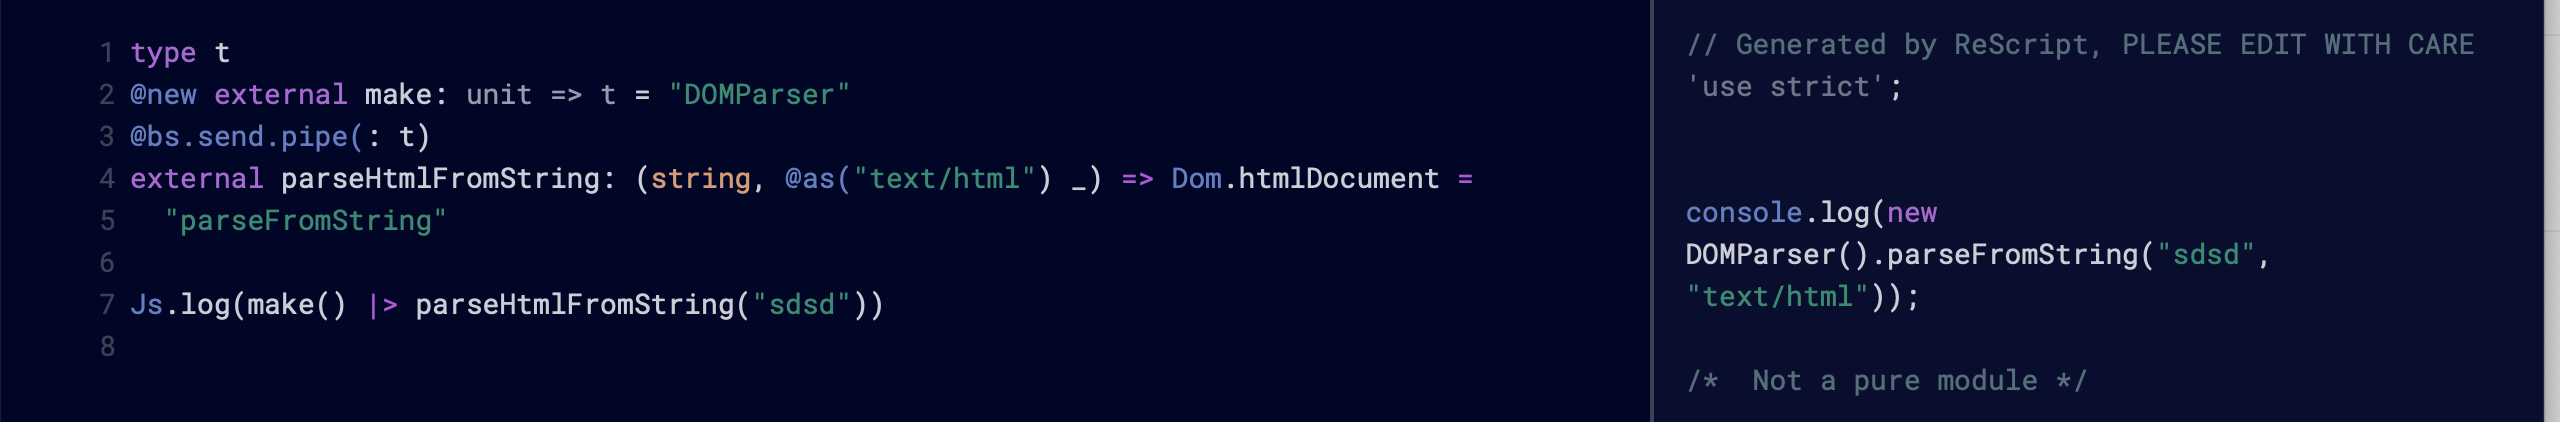 Incorrect js code generated moving from Reason to Rescript · Issue ...